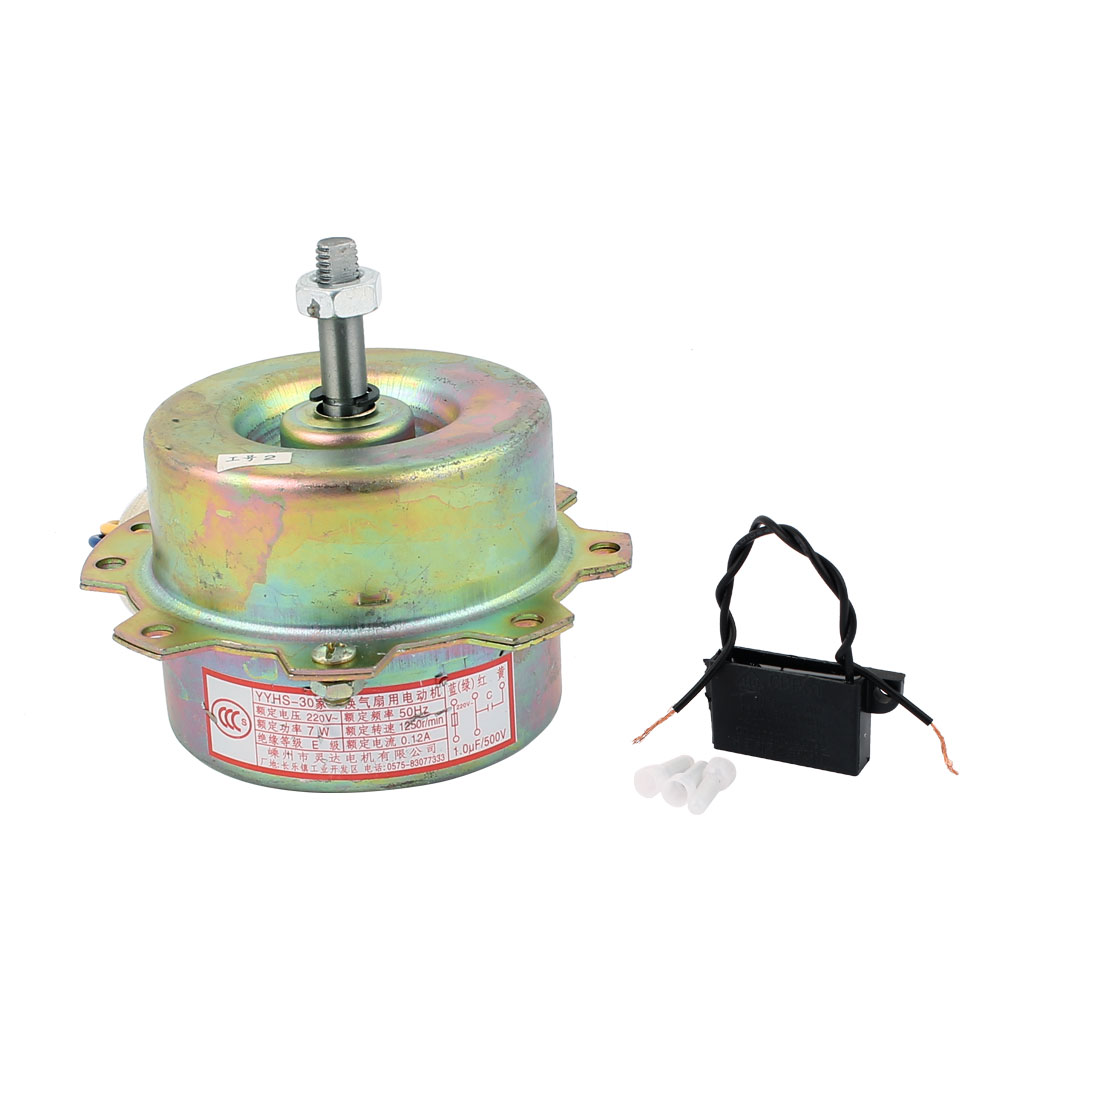 AC 220V 0.12A 7W 1250RPM 8mmx30mm Dual Bearing Ball Electric Ventilator Fan Motor